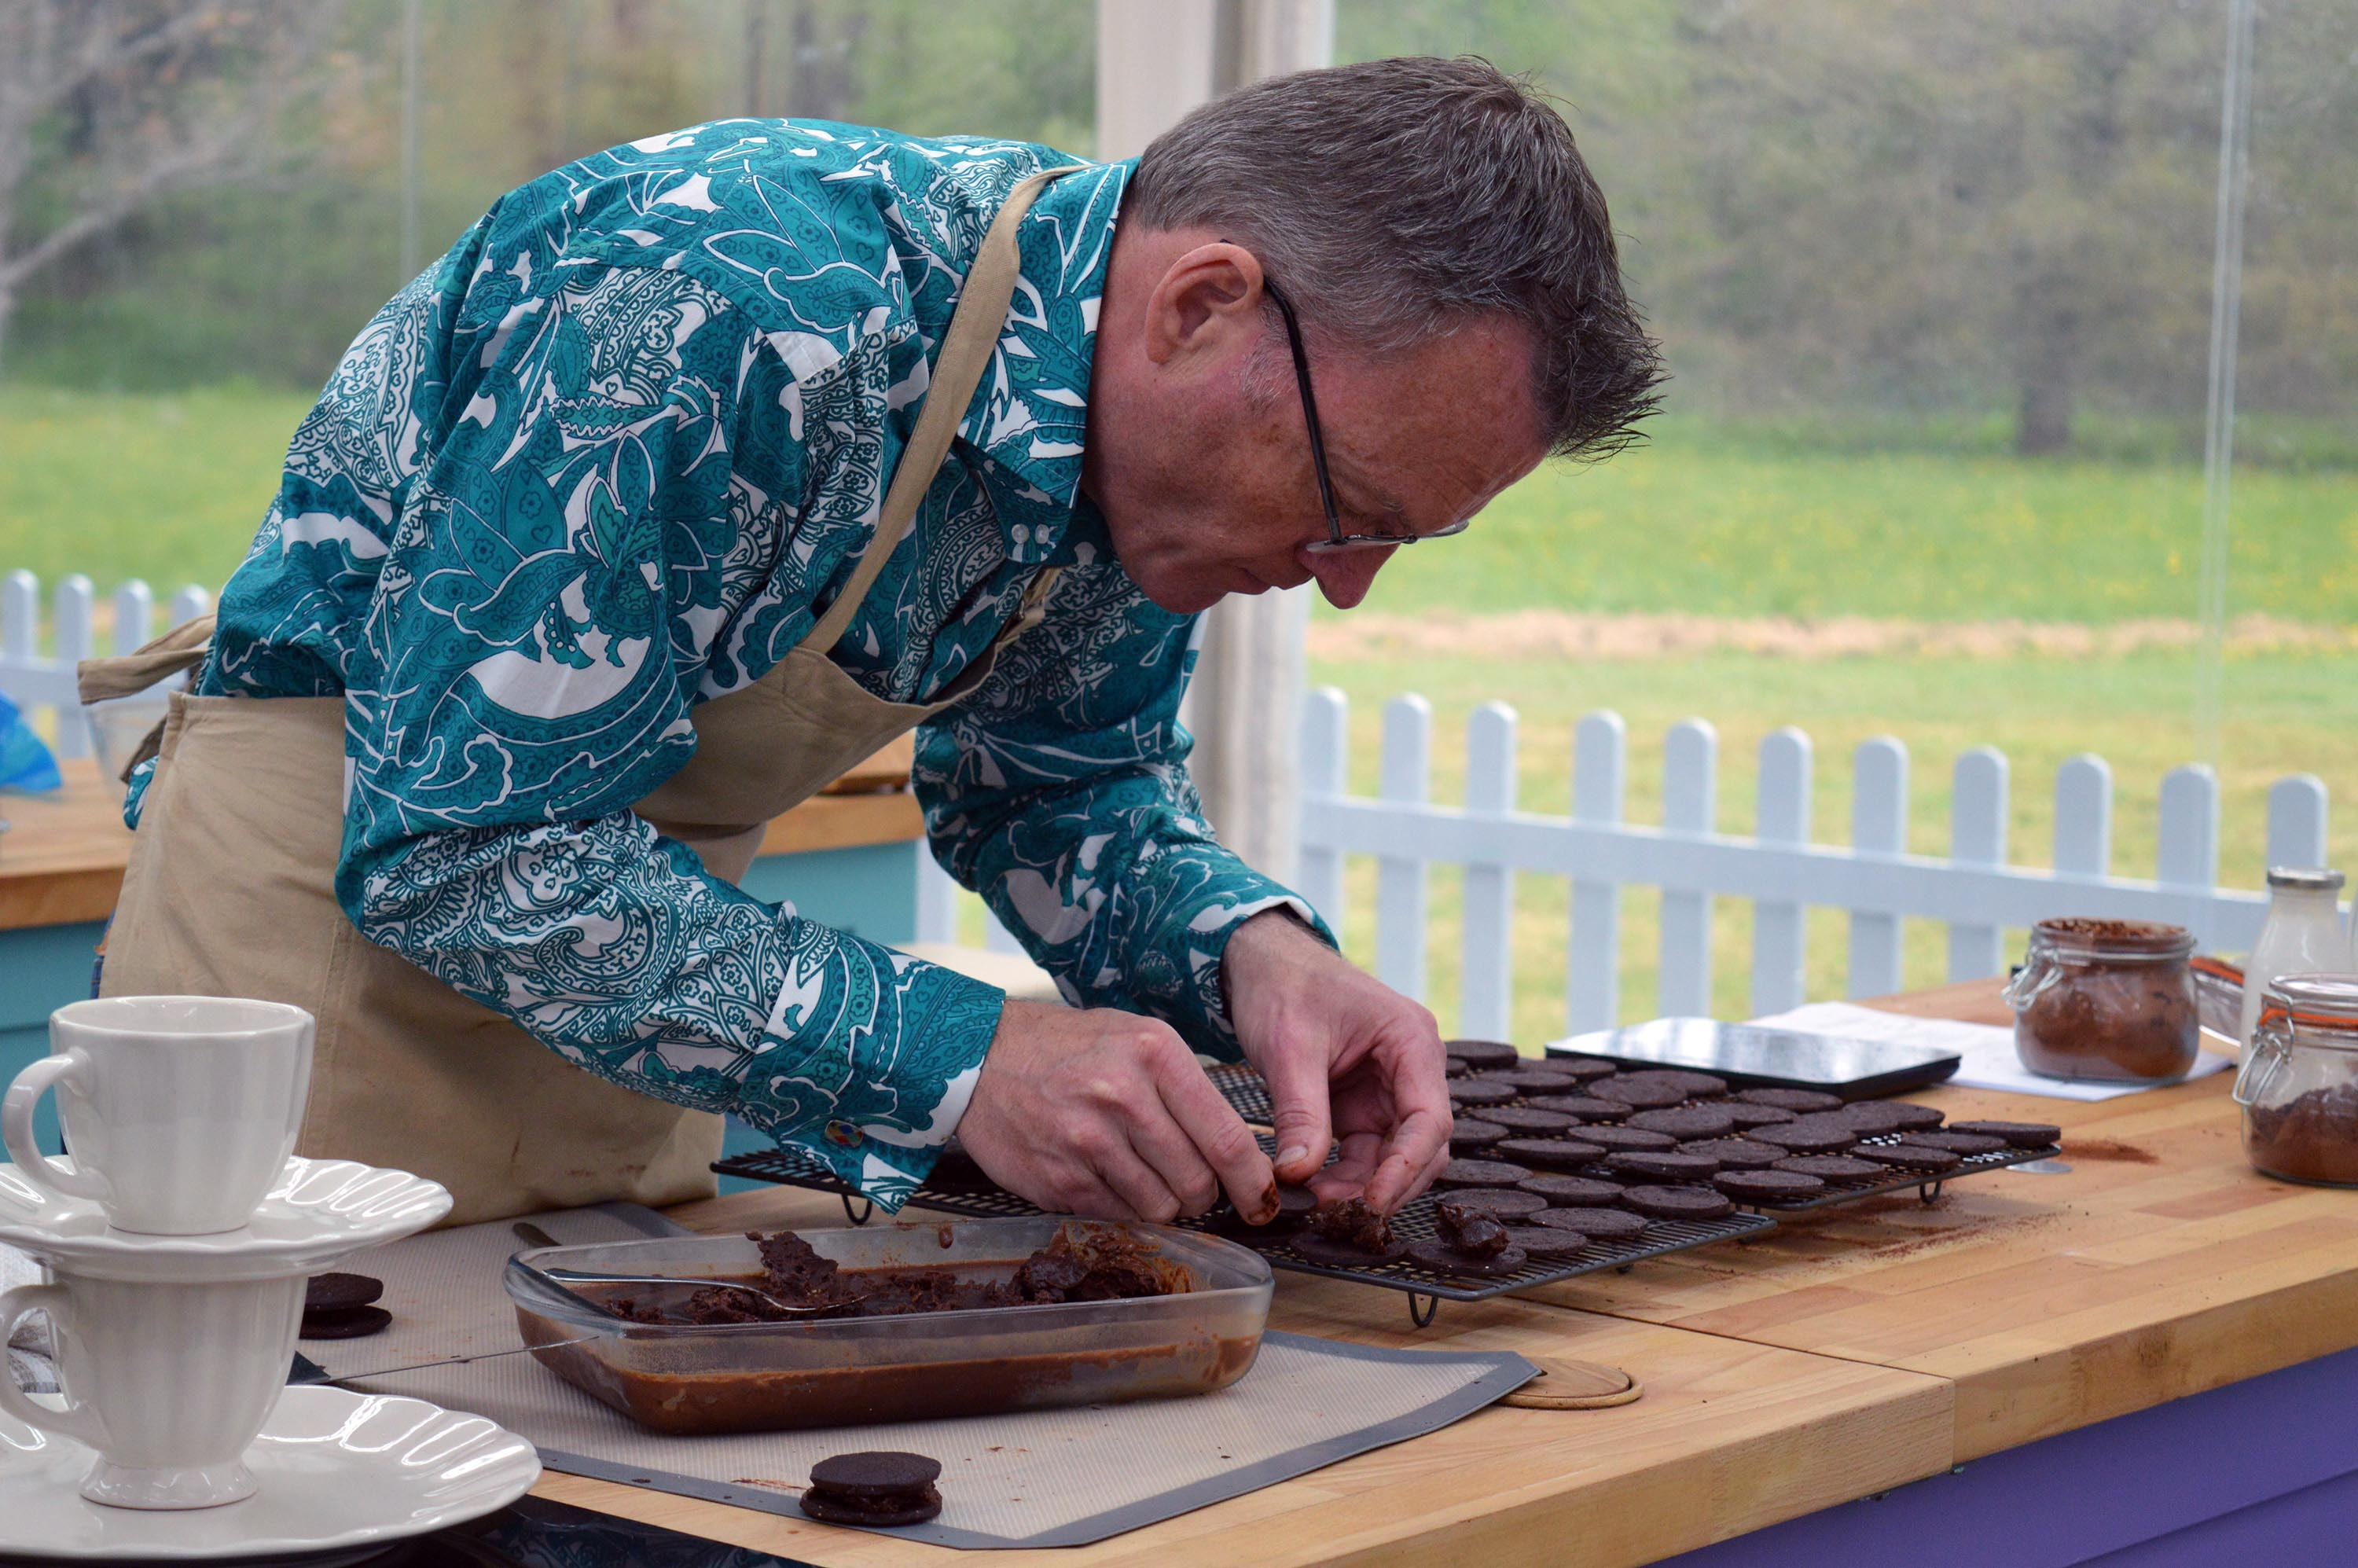 The Great British Bake Off 2017: Chris